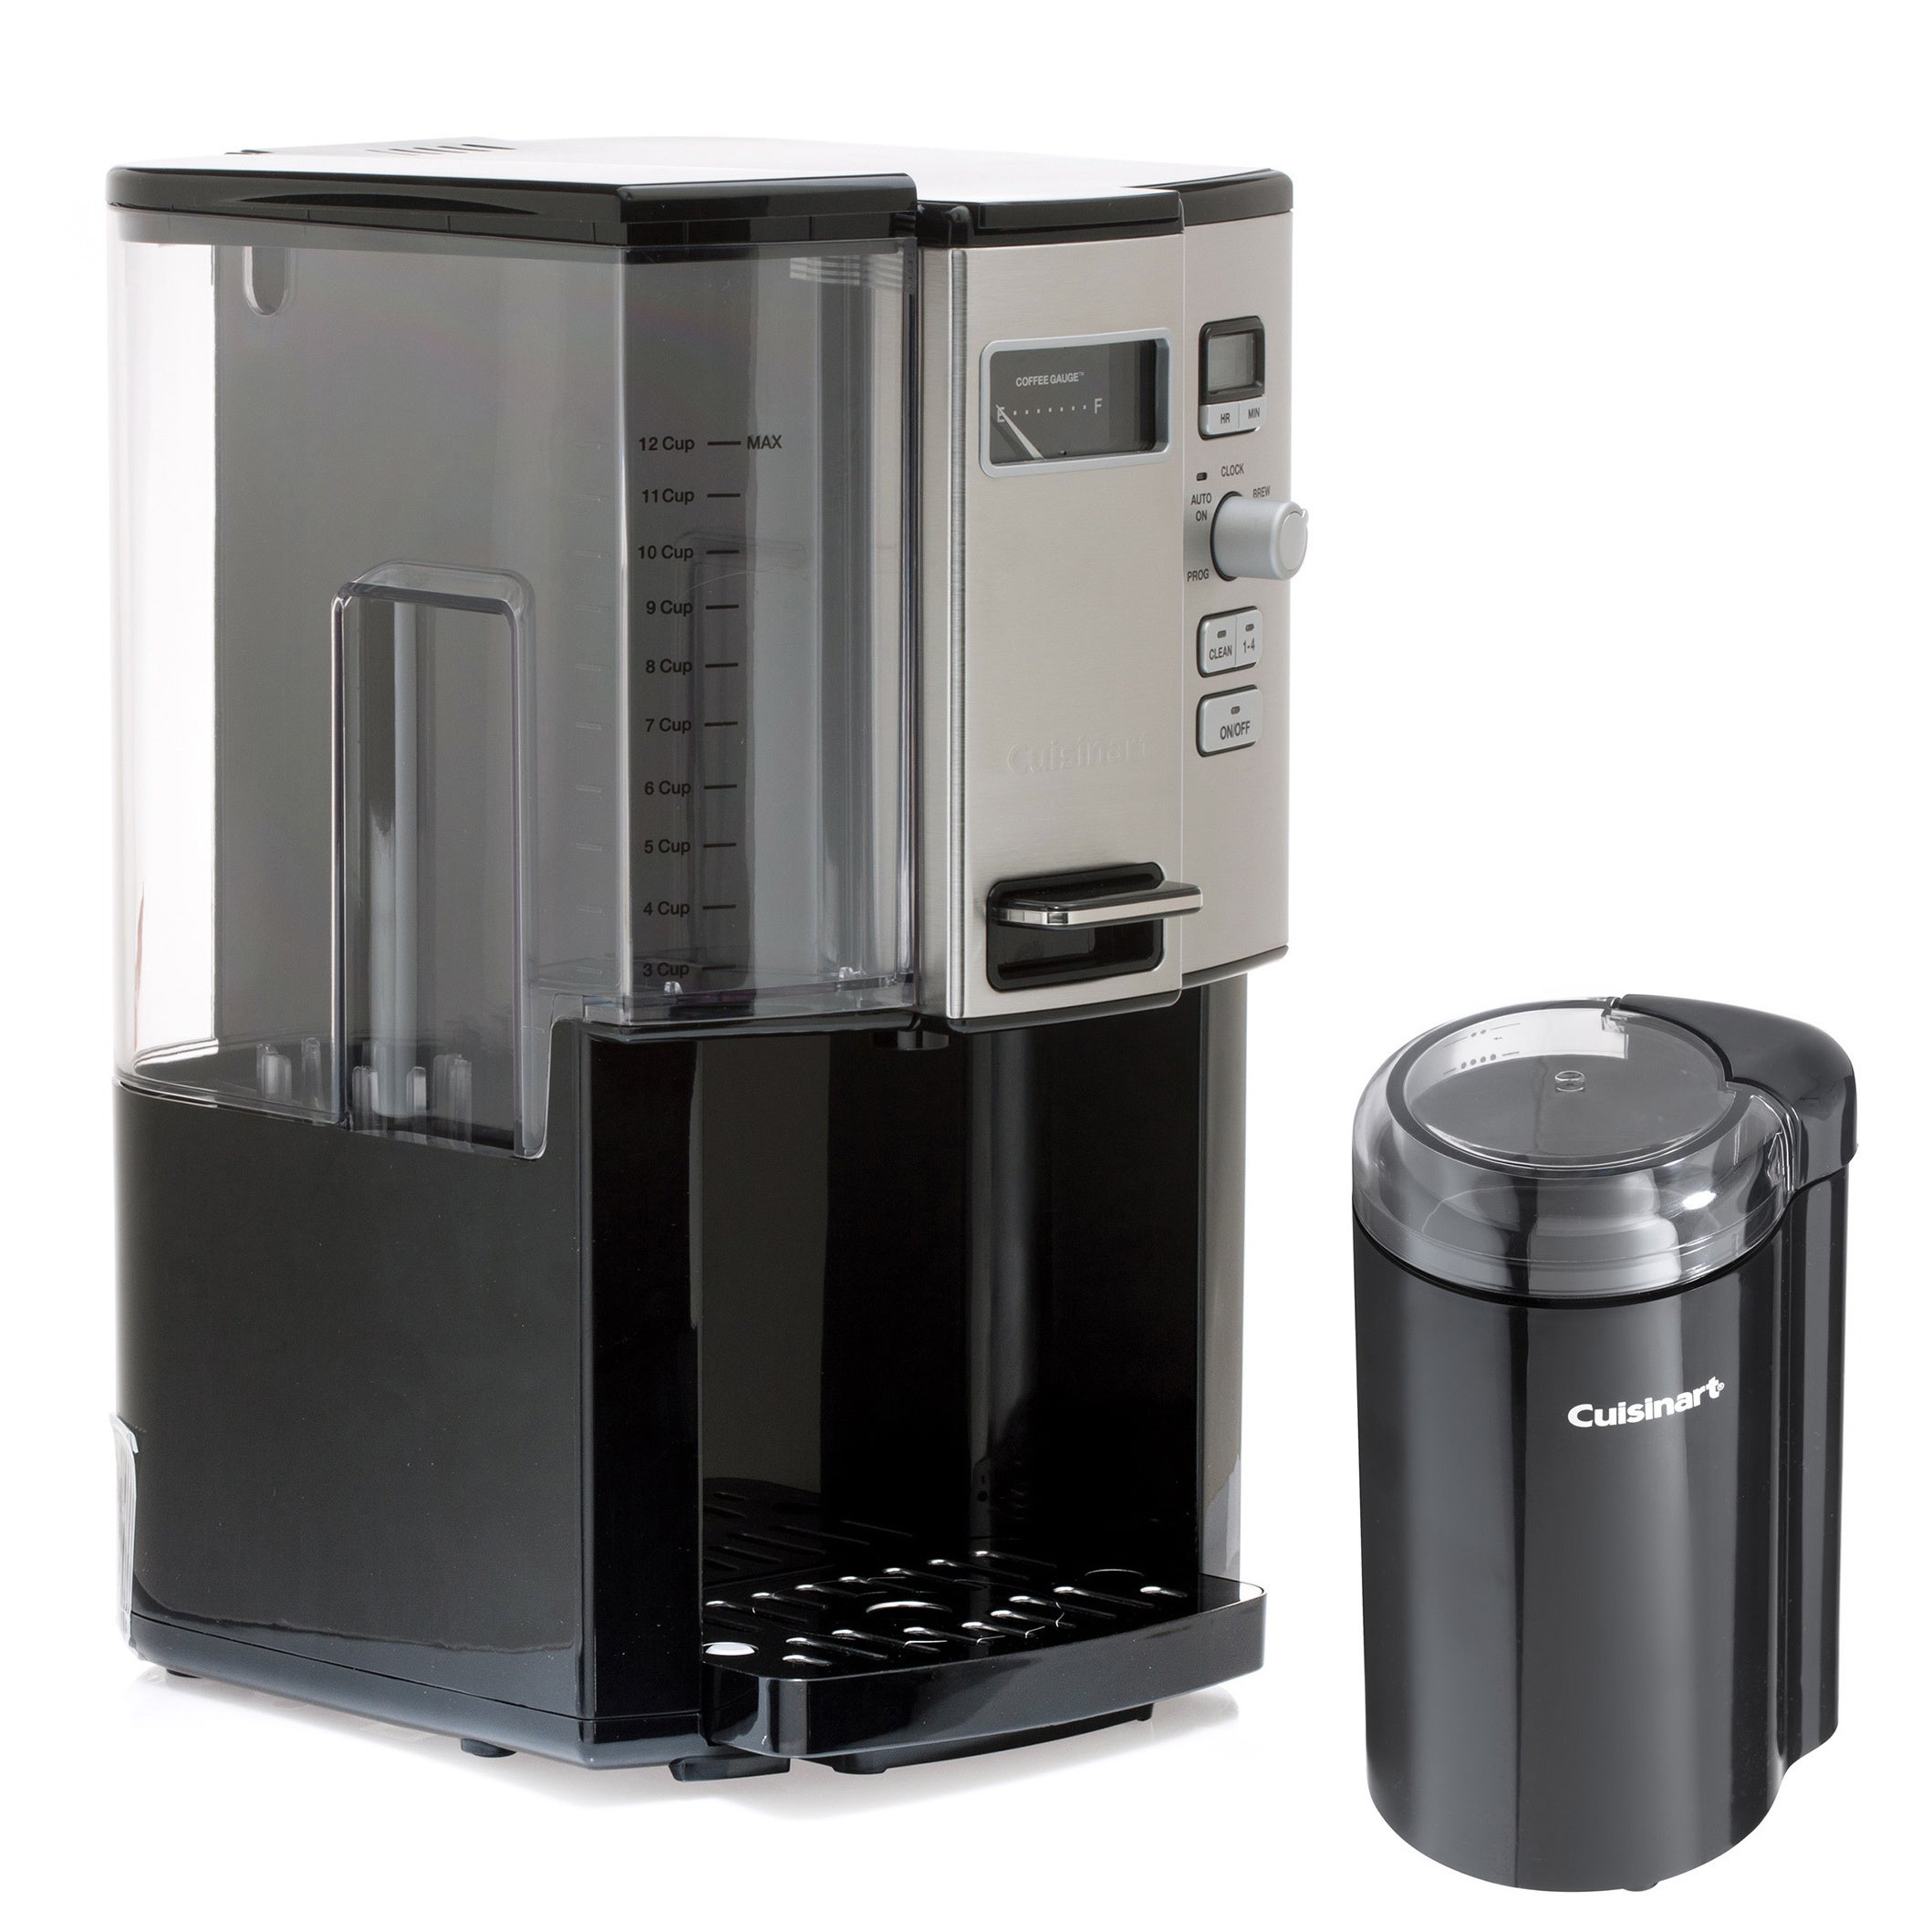 Cuisinart DCC-3000 12-cup Coffee on Demand Programmable Coffee Maker with Bonus Coffee Grinder ...